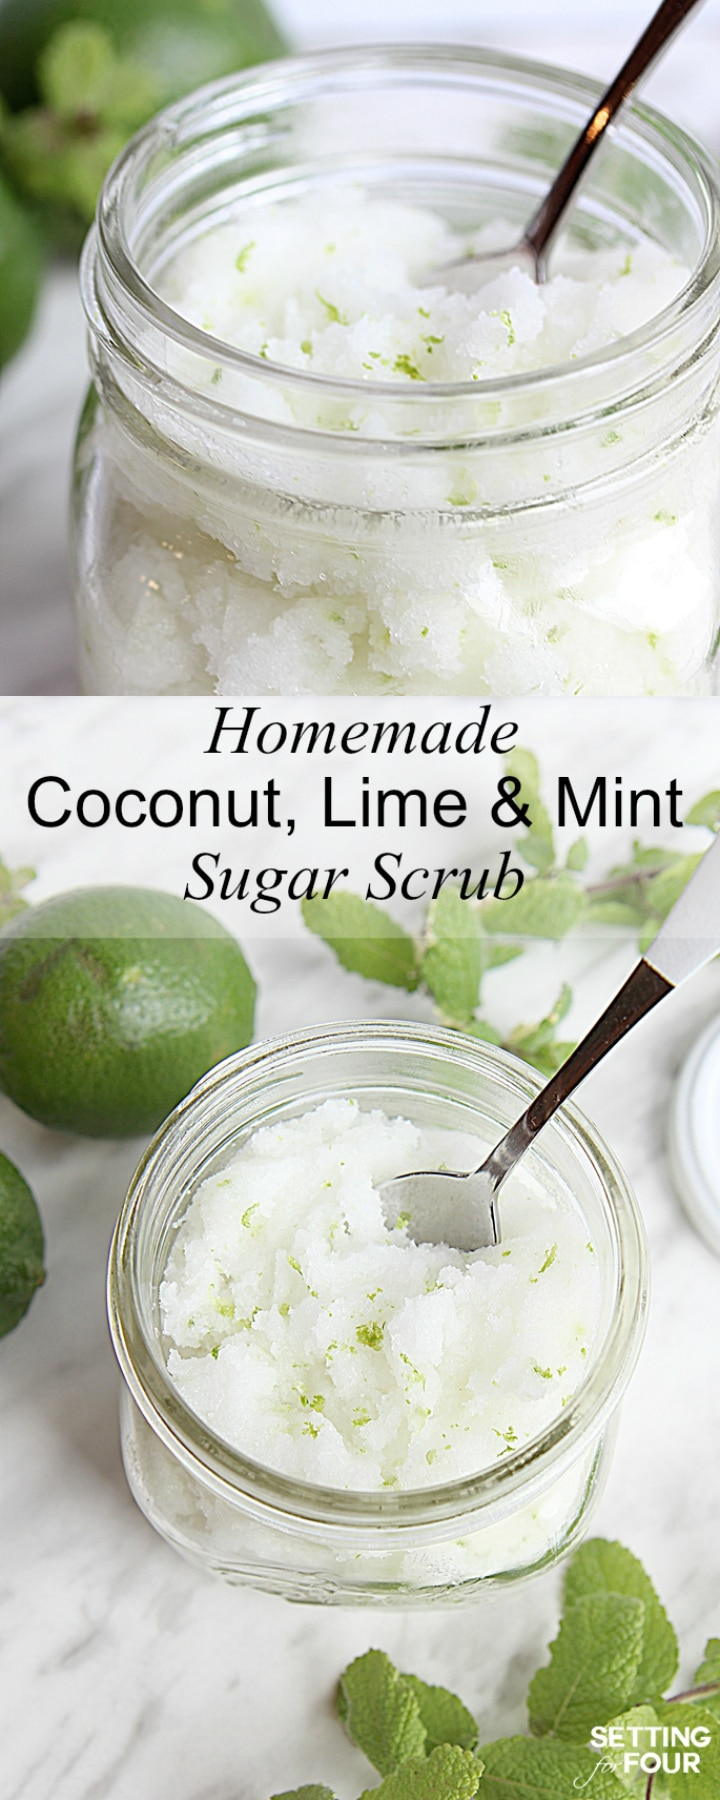 Make this amazing DIY Lime Mint Sugar Scrub to paper your skin! Great gift idea too!